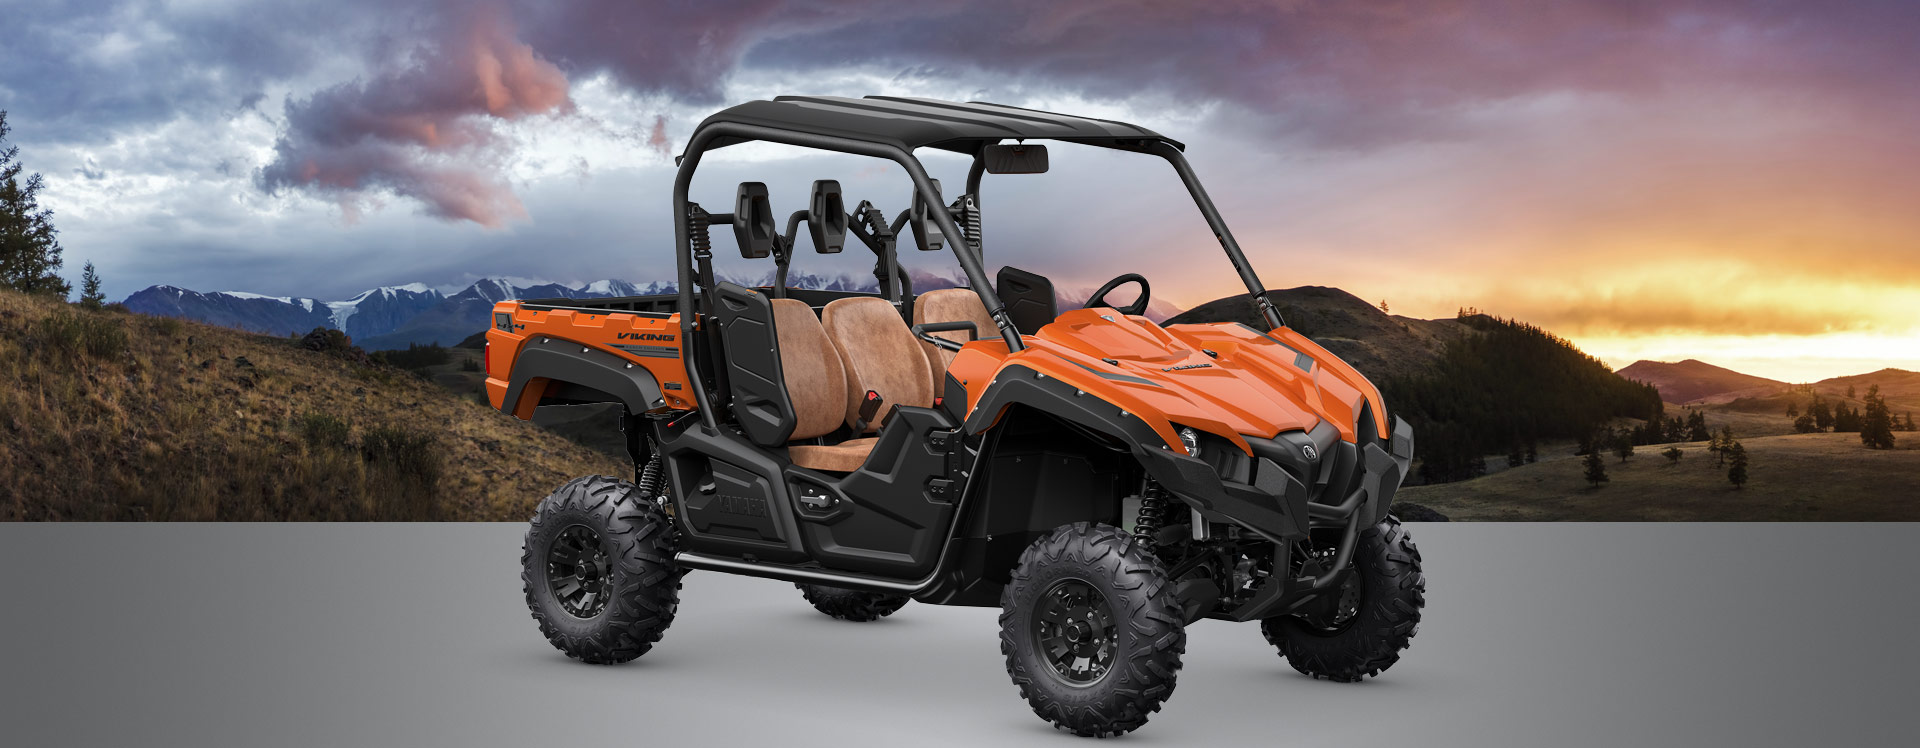 2021 Yamaha Viking-Eps-Ranch-Edition